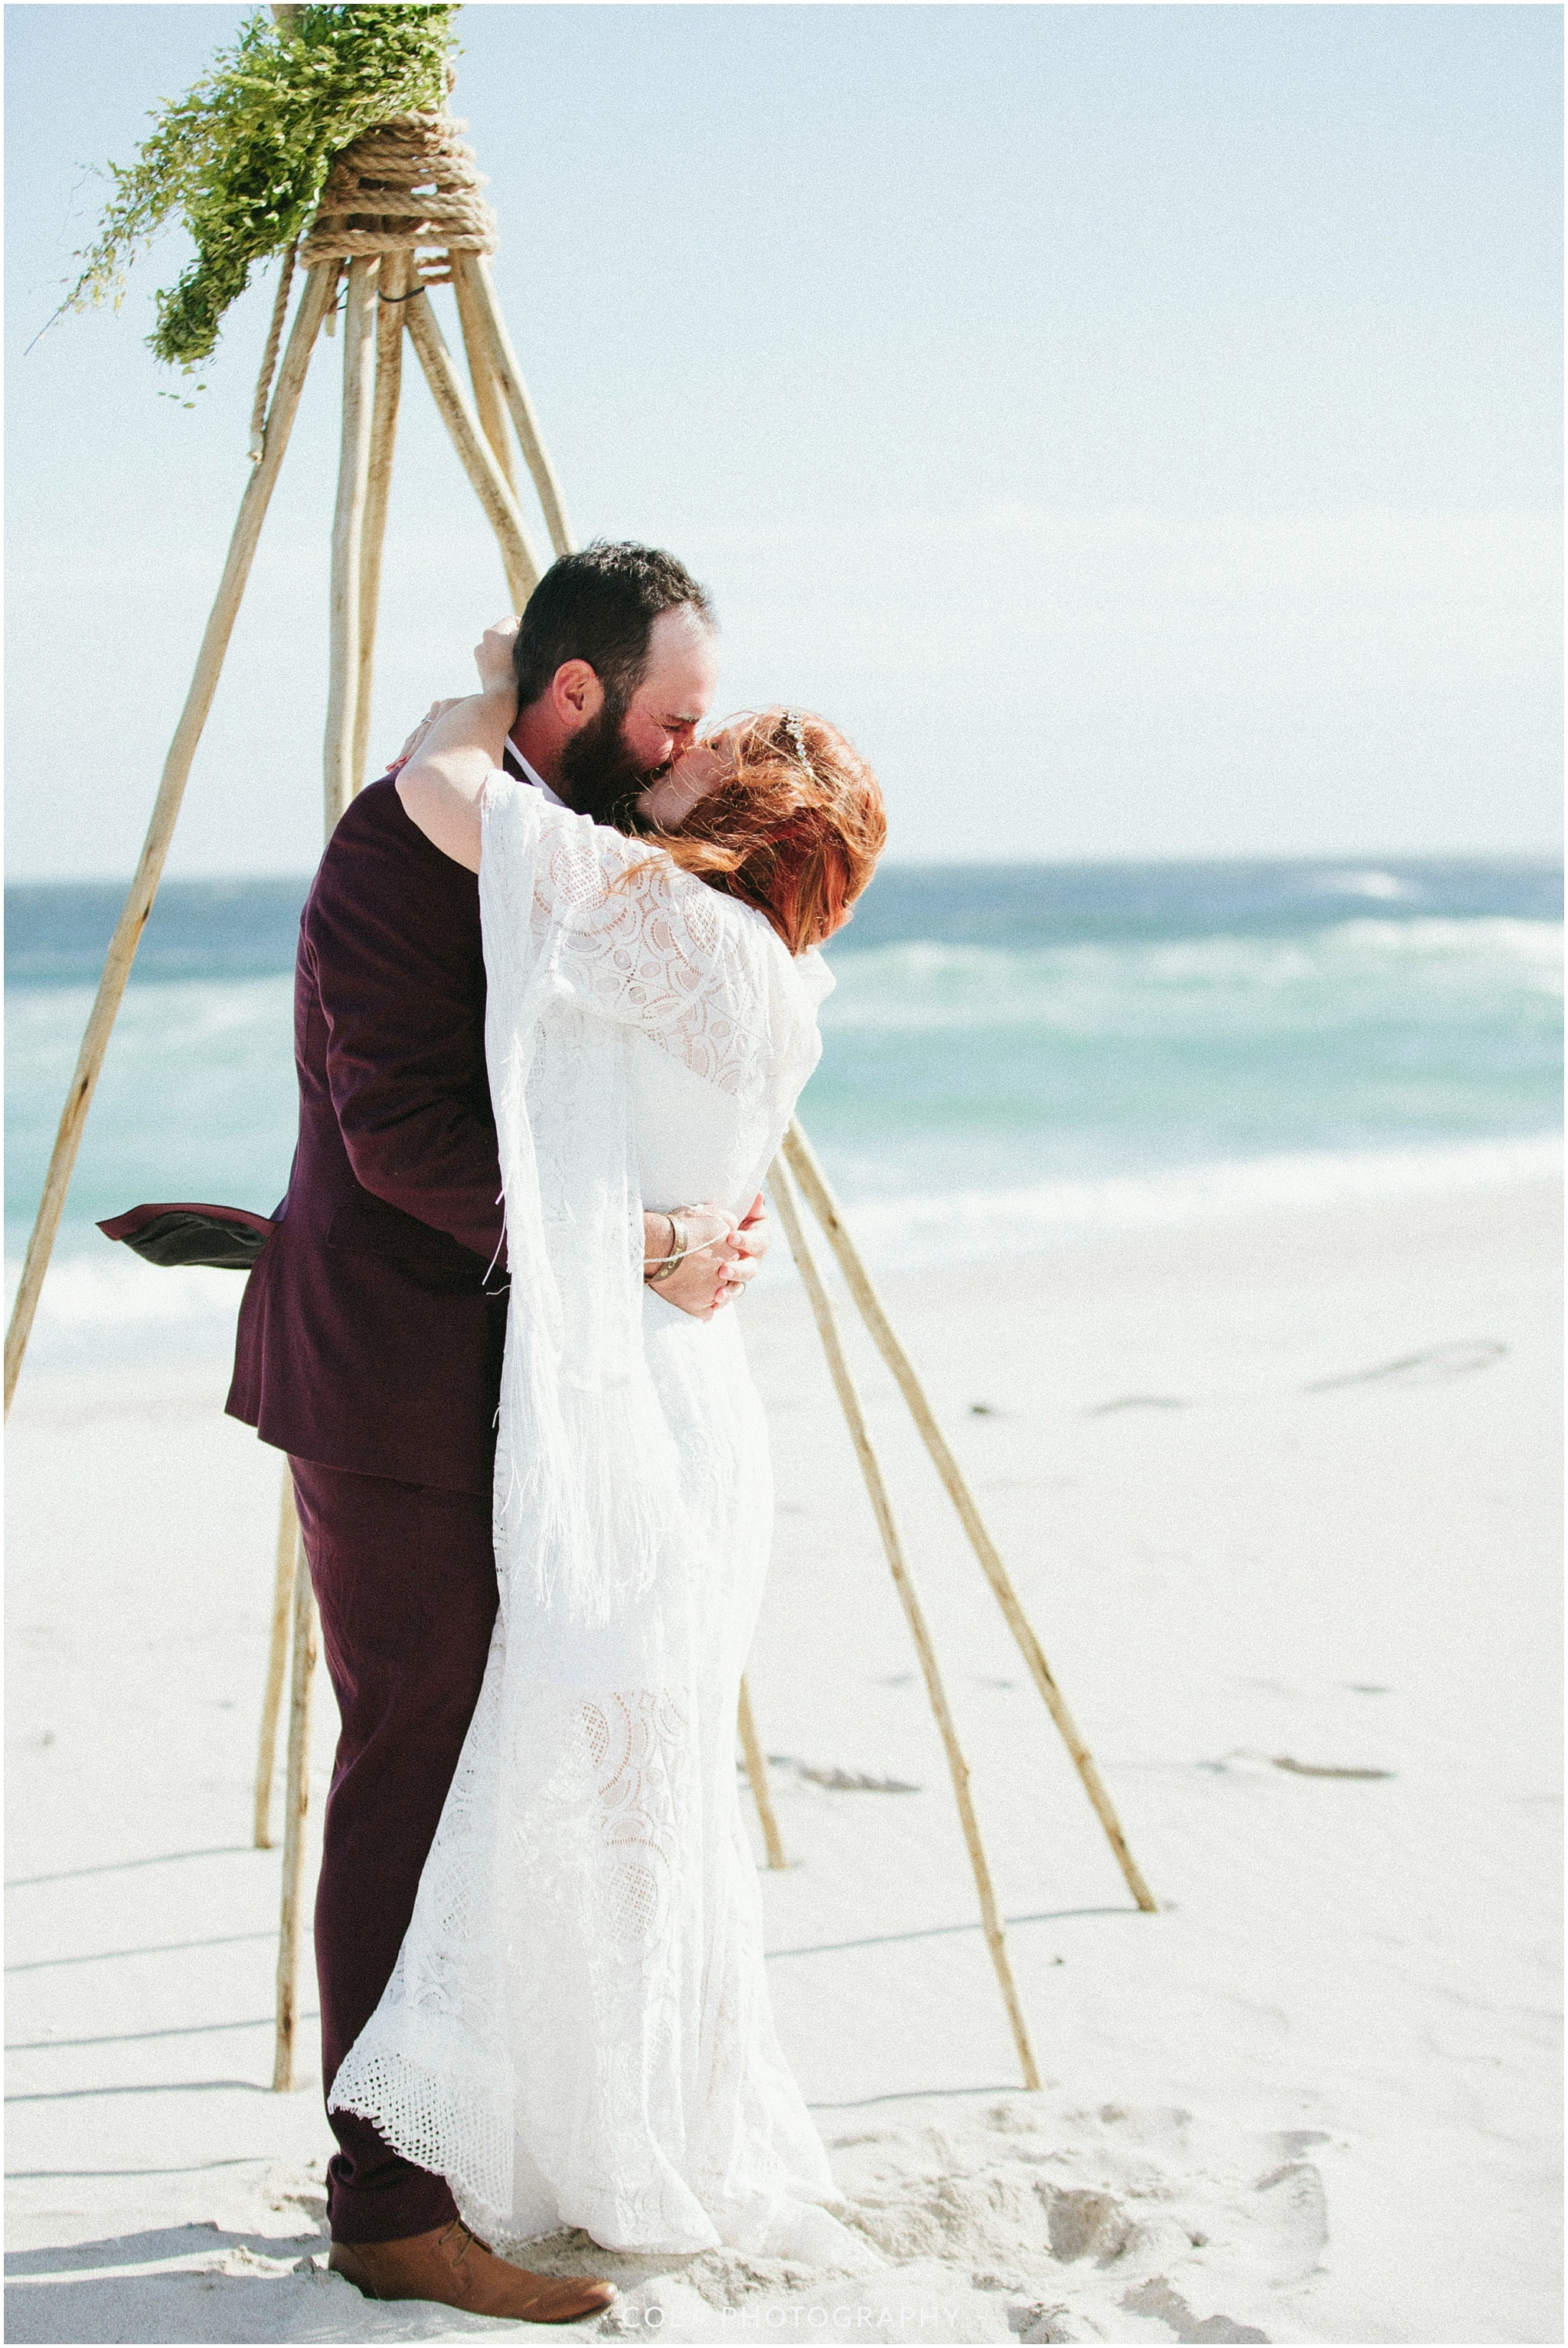 Conrad & Mareli - Boho beach wedding - ceremony (17)